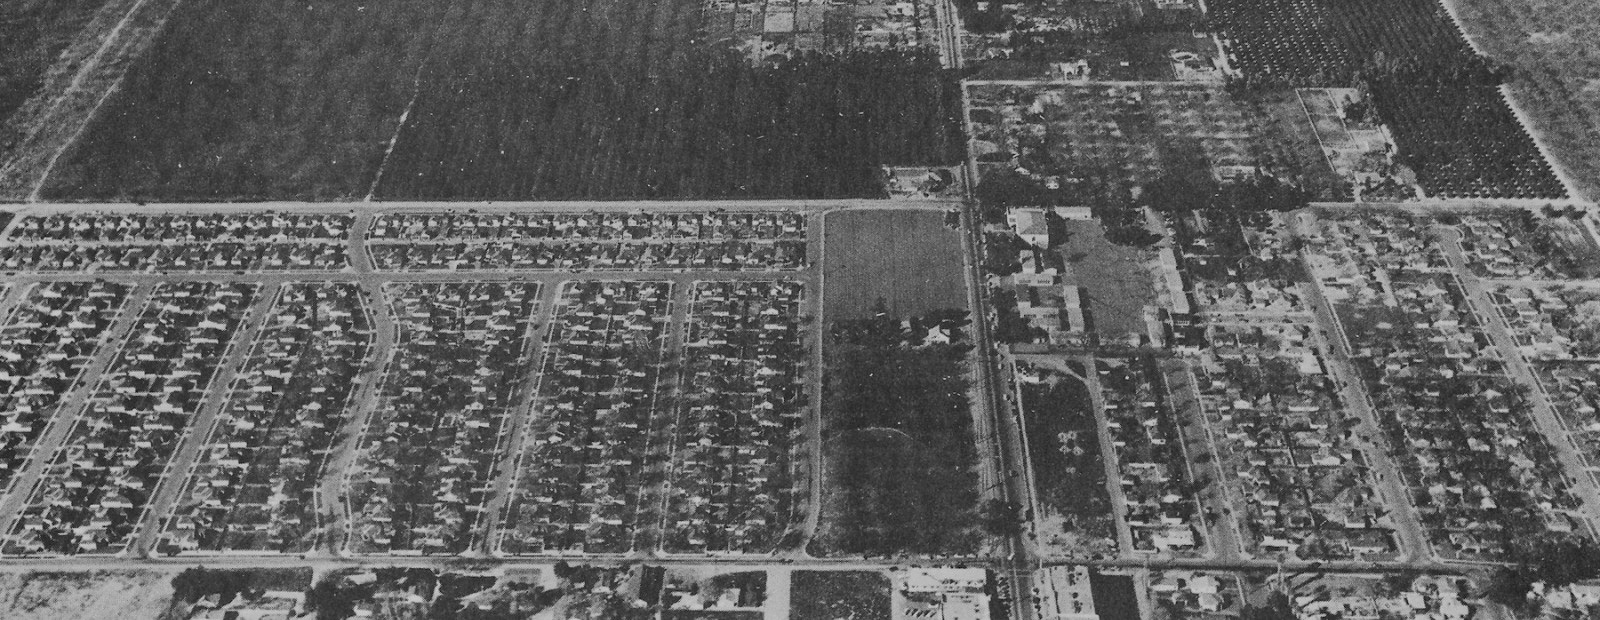 northridge-1950